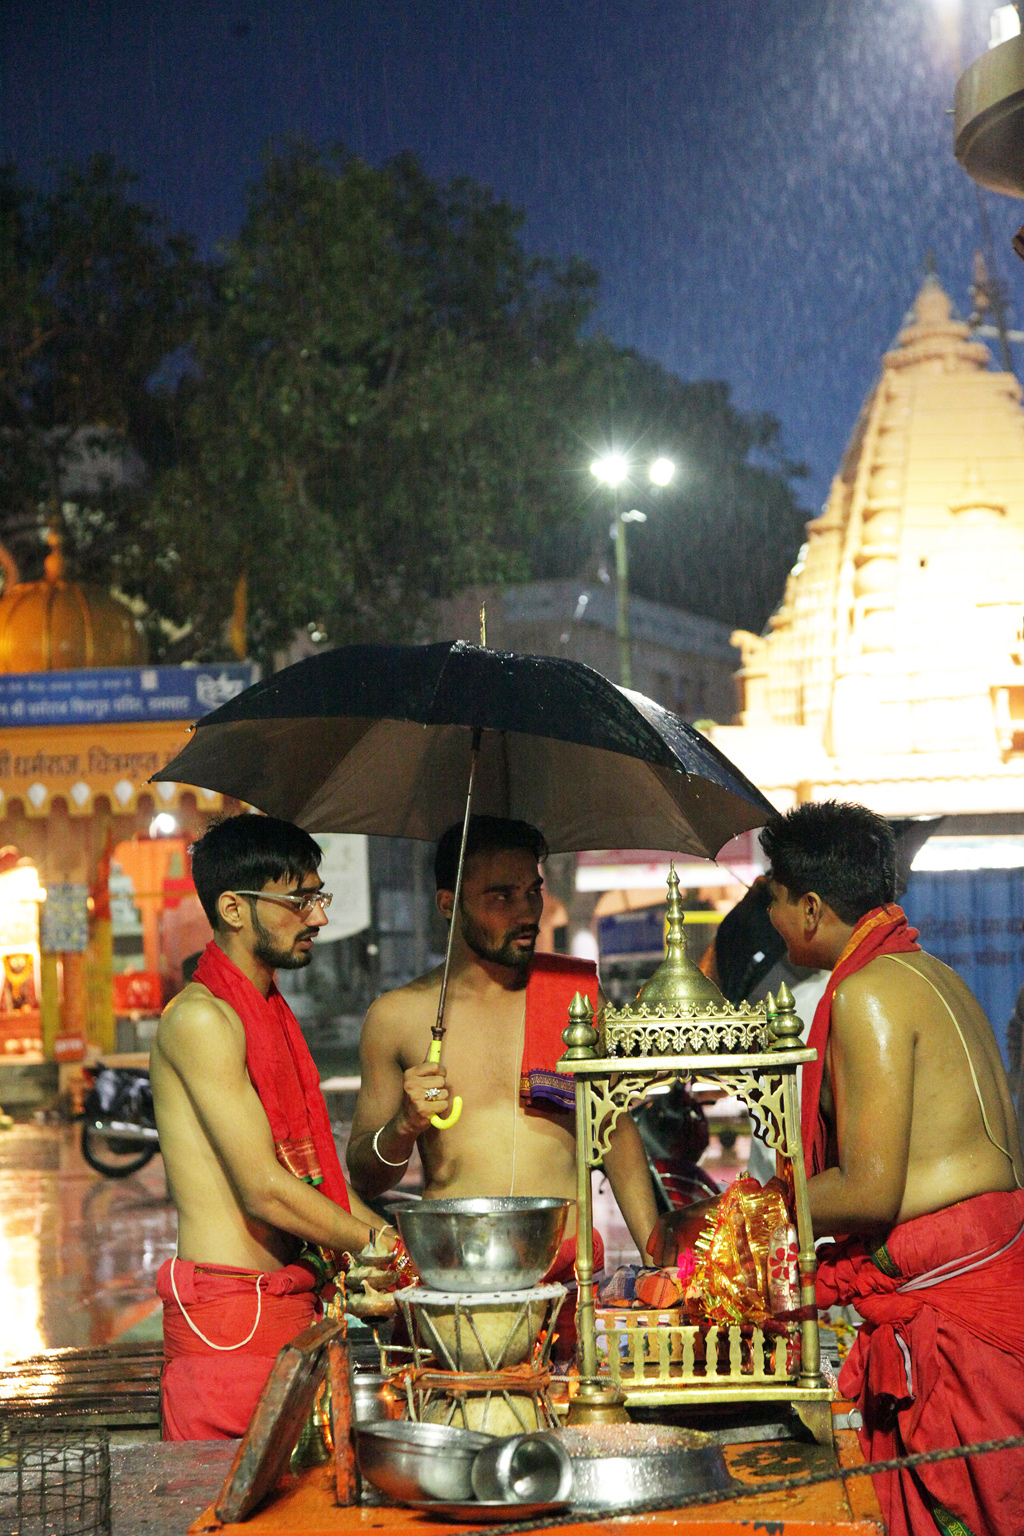 Priests discuss where to shift the puja after a sudden squall disrupts the traditional evening ritual.